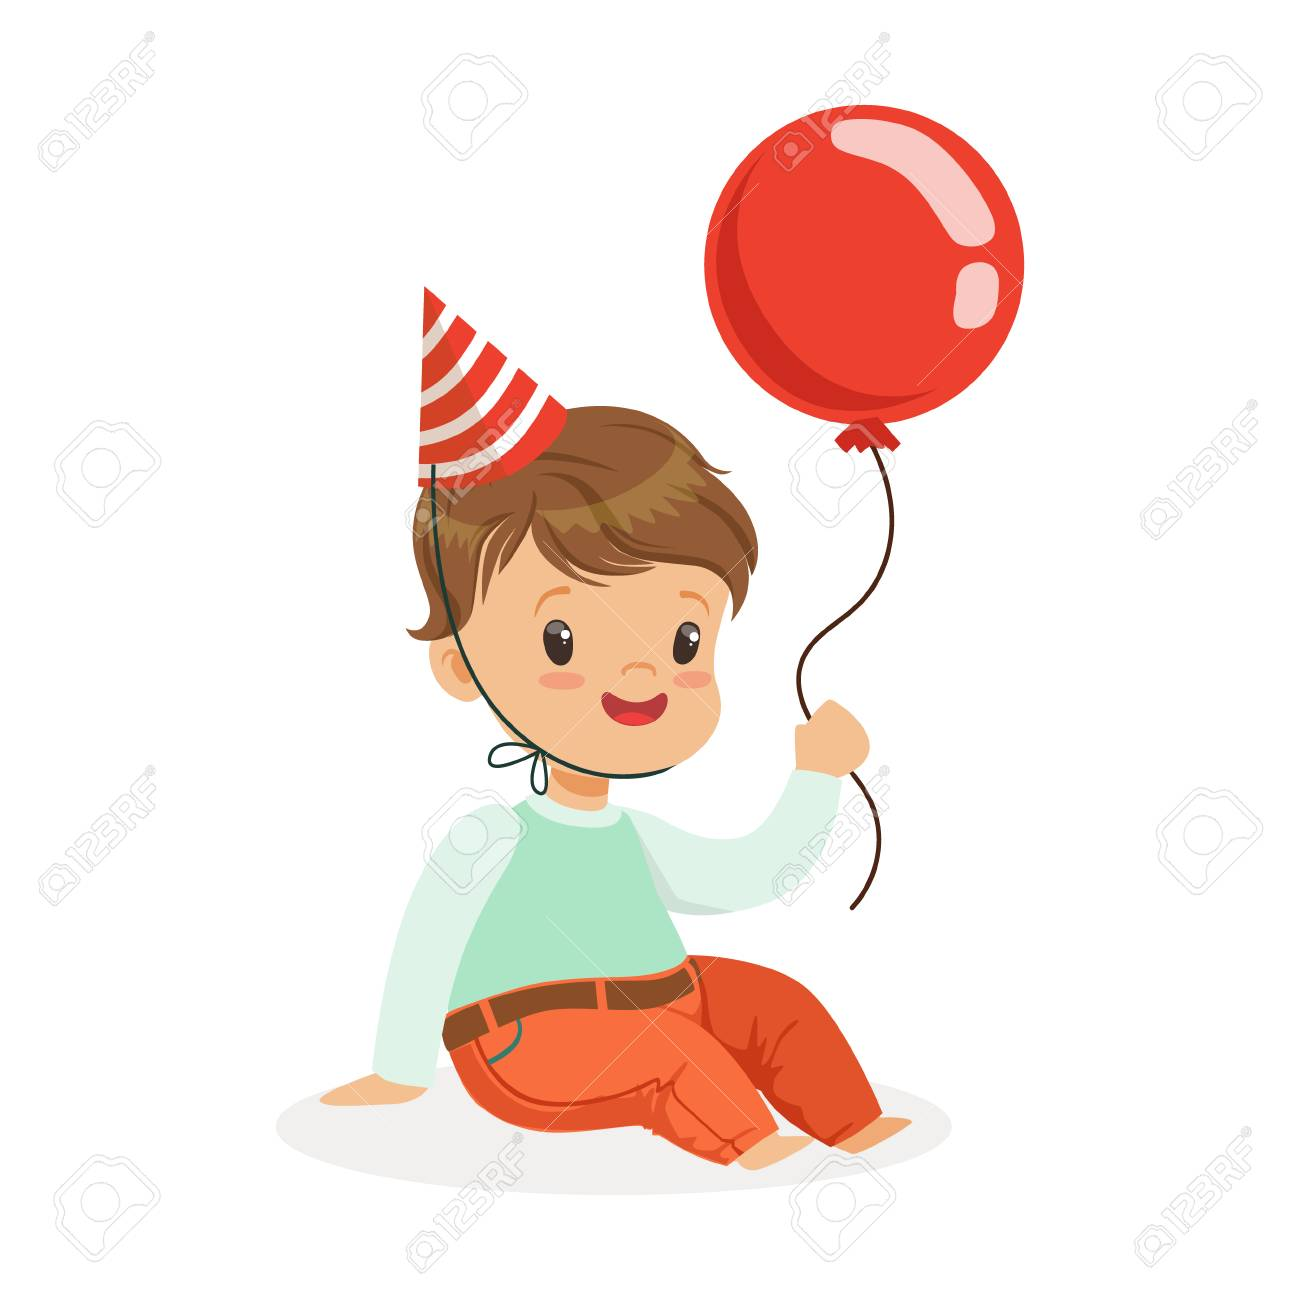 Adorable Baby Boy Wearing A Red Party Hat Sitting And Holding Balloon Kids Birthday